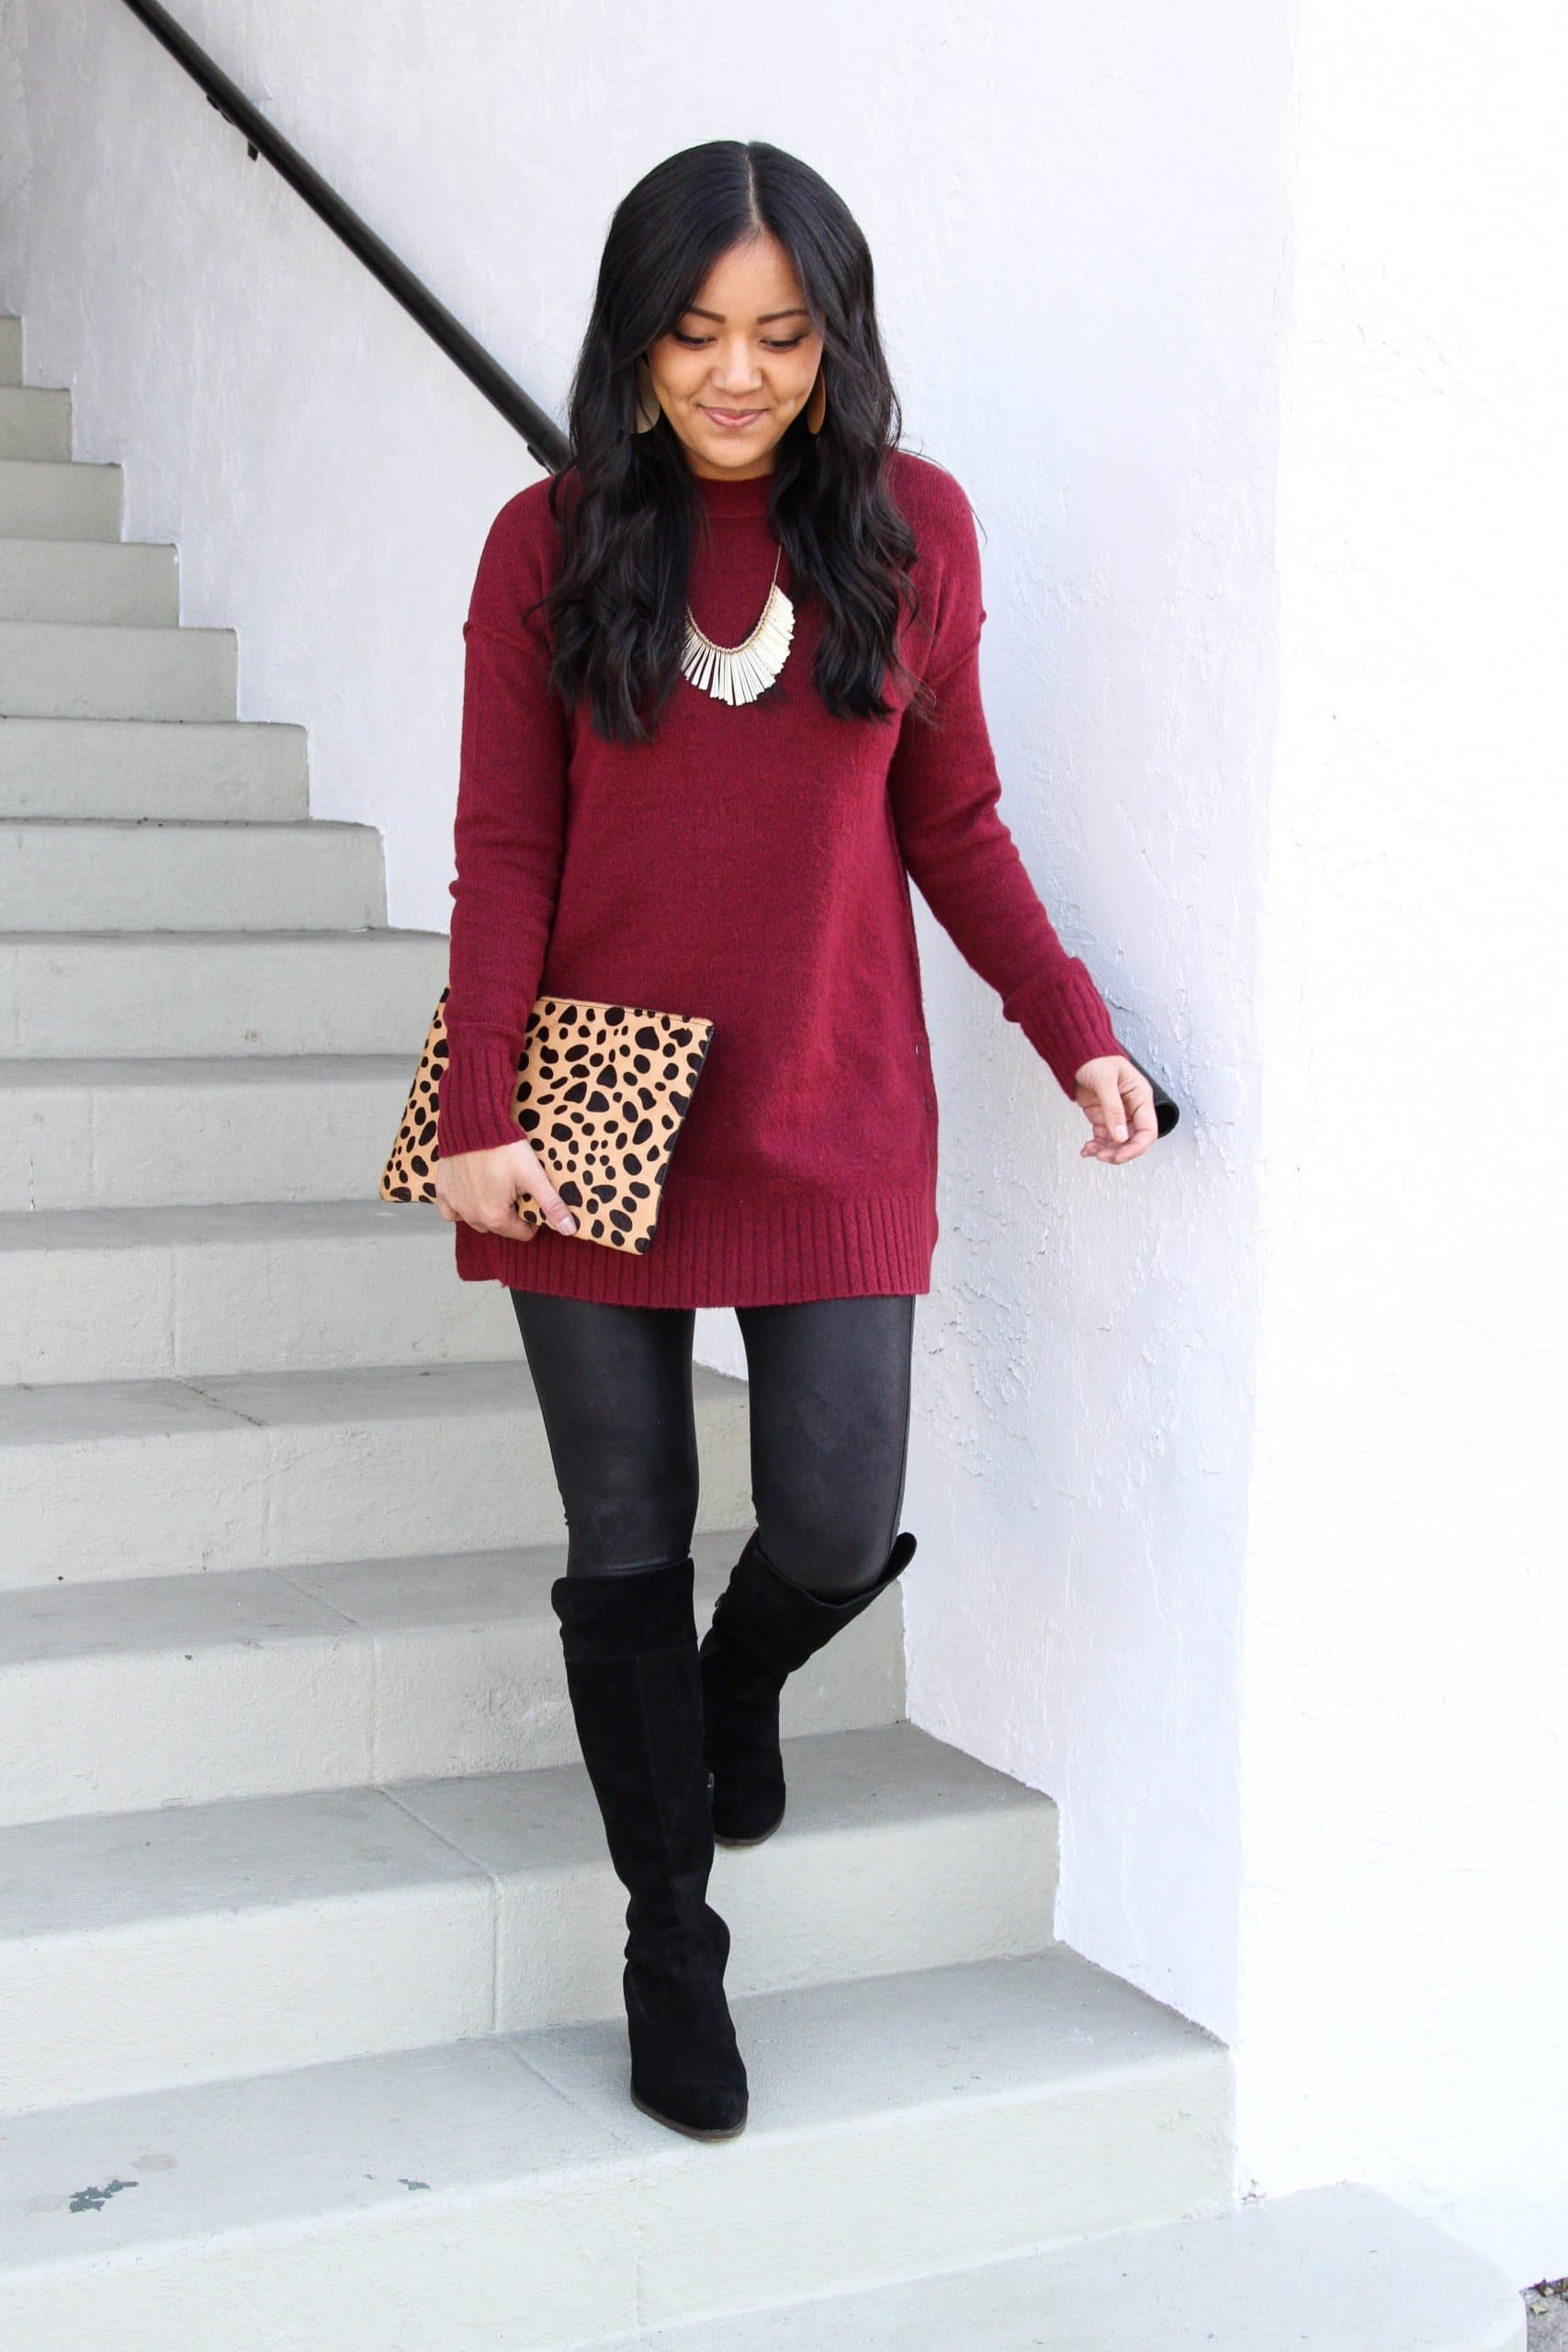 maroon sweater + black boots + faux leather leggings + leopard print clutch